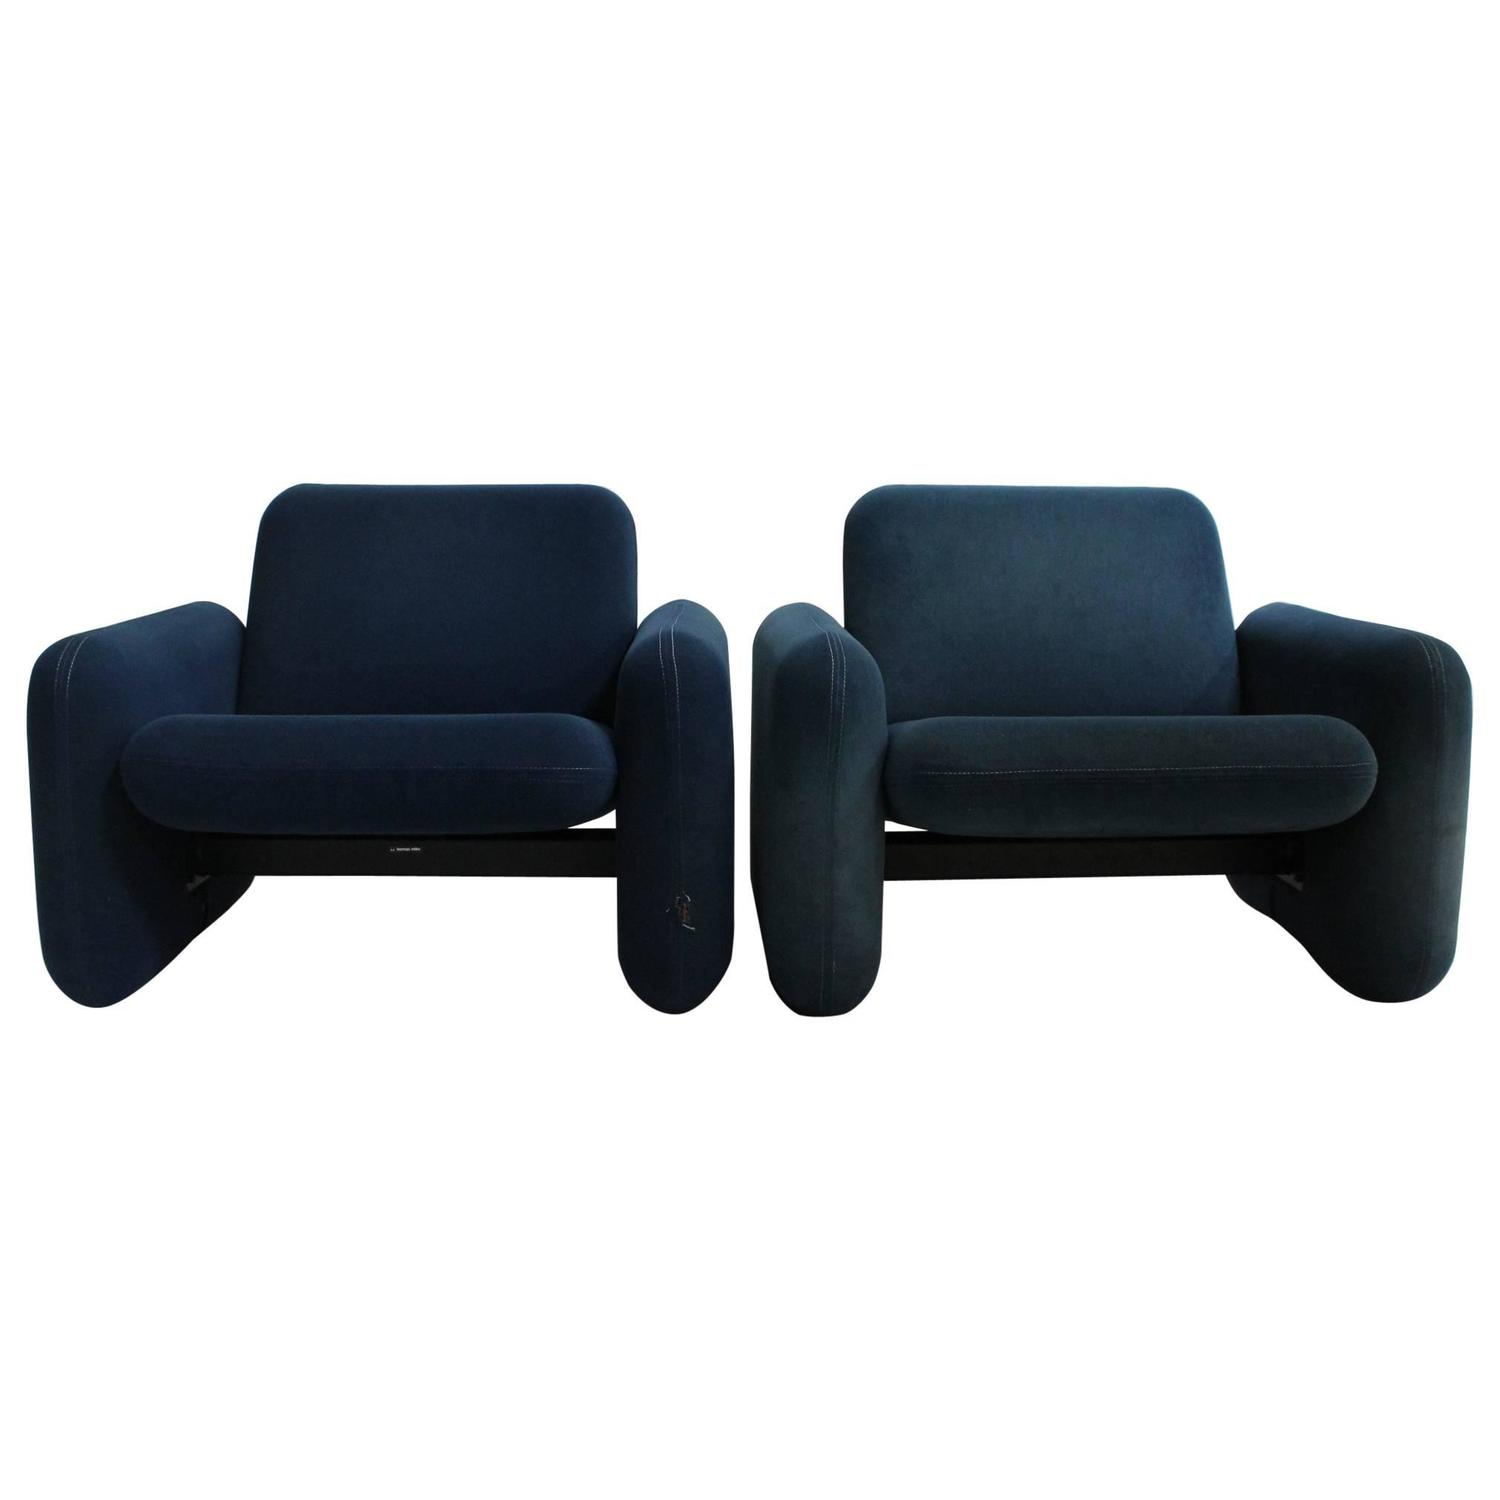 Ray Wilkes for Herman Miller Chiclet Chairs a Pair For Sale at